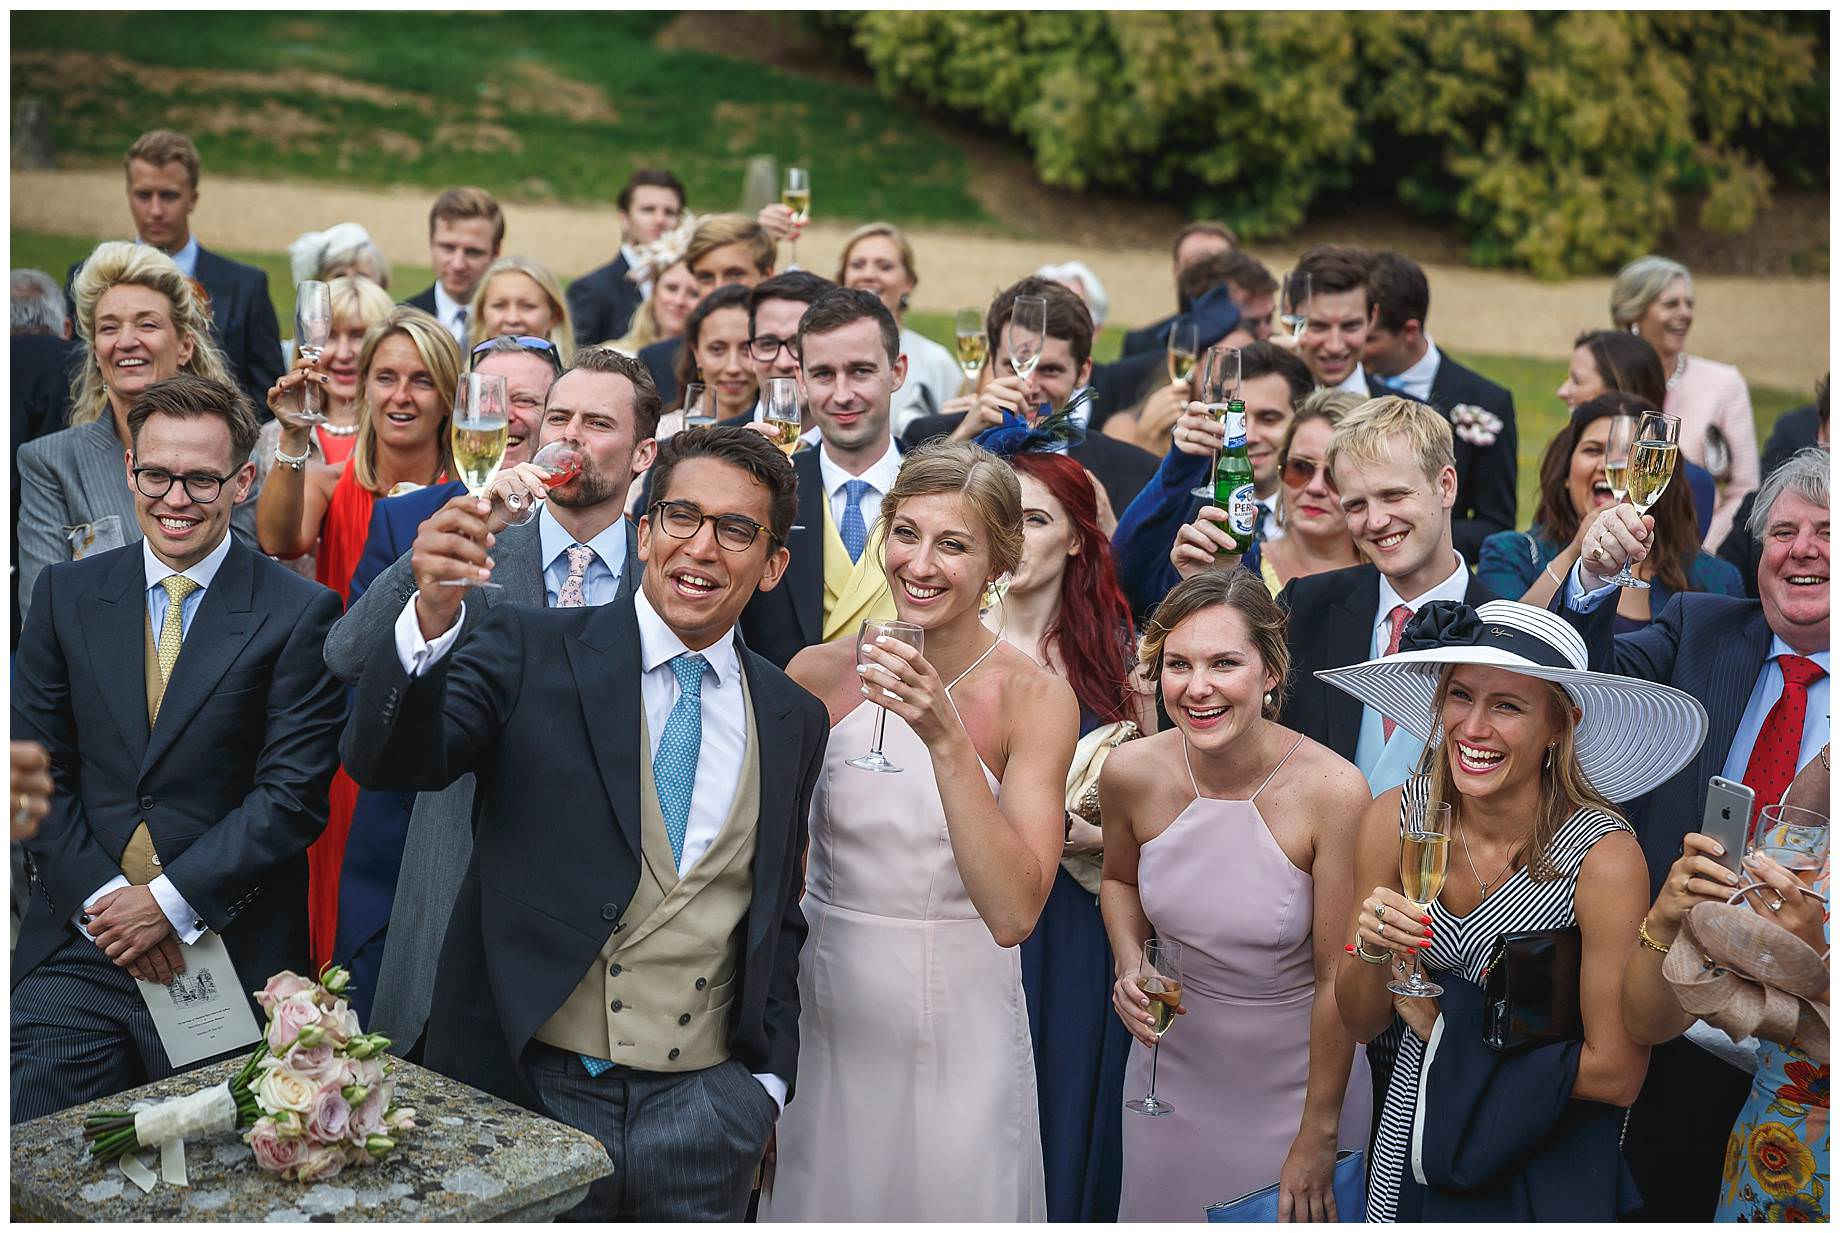 all guests raise a glass of champagne in a toast